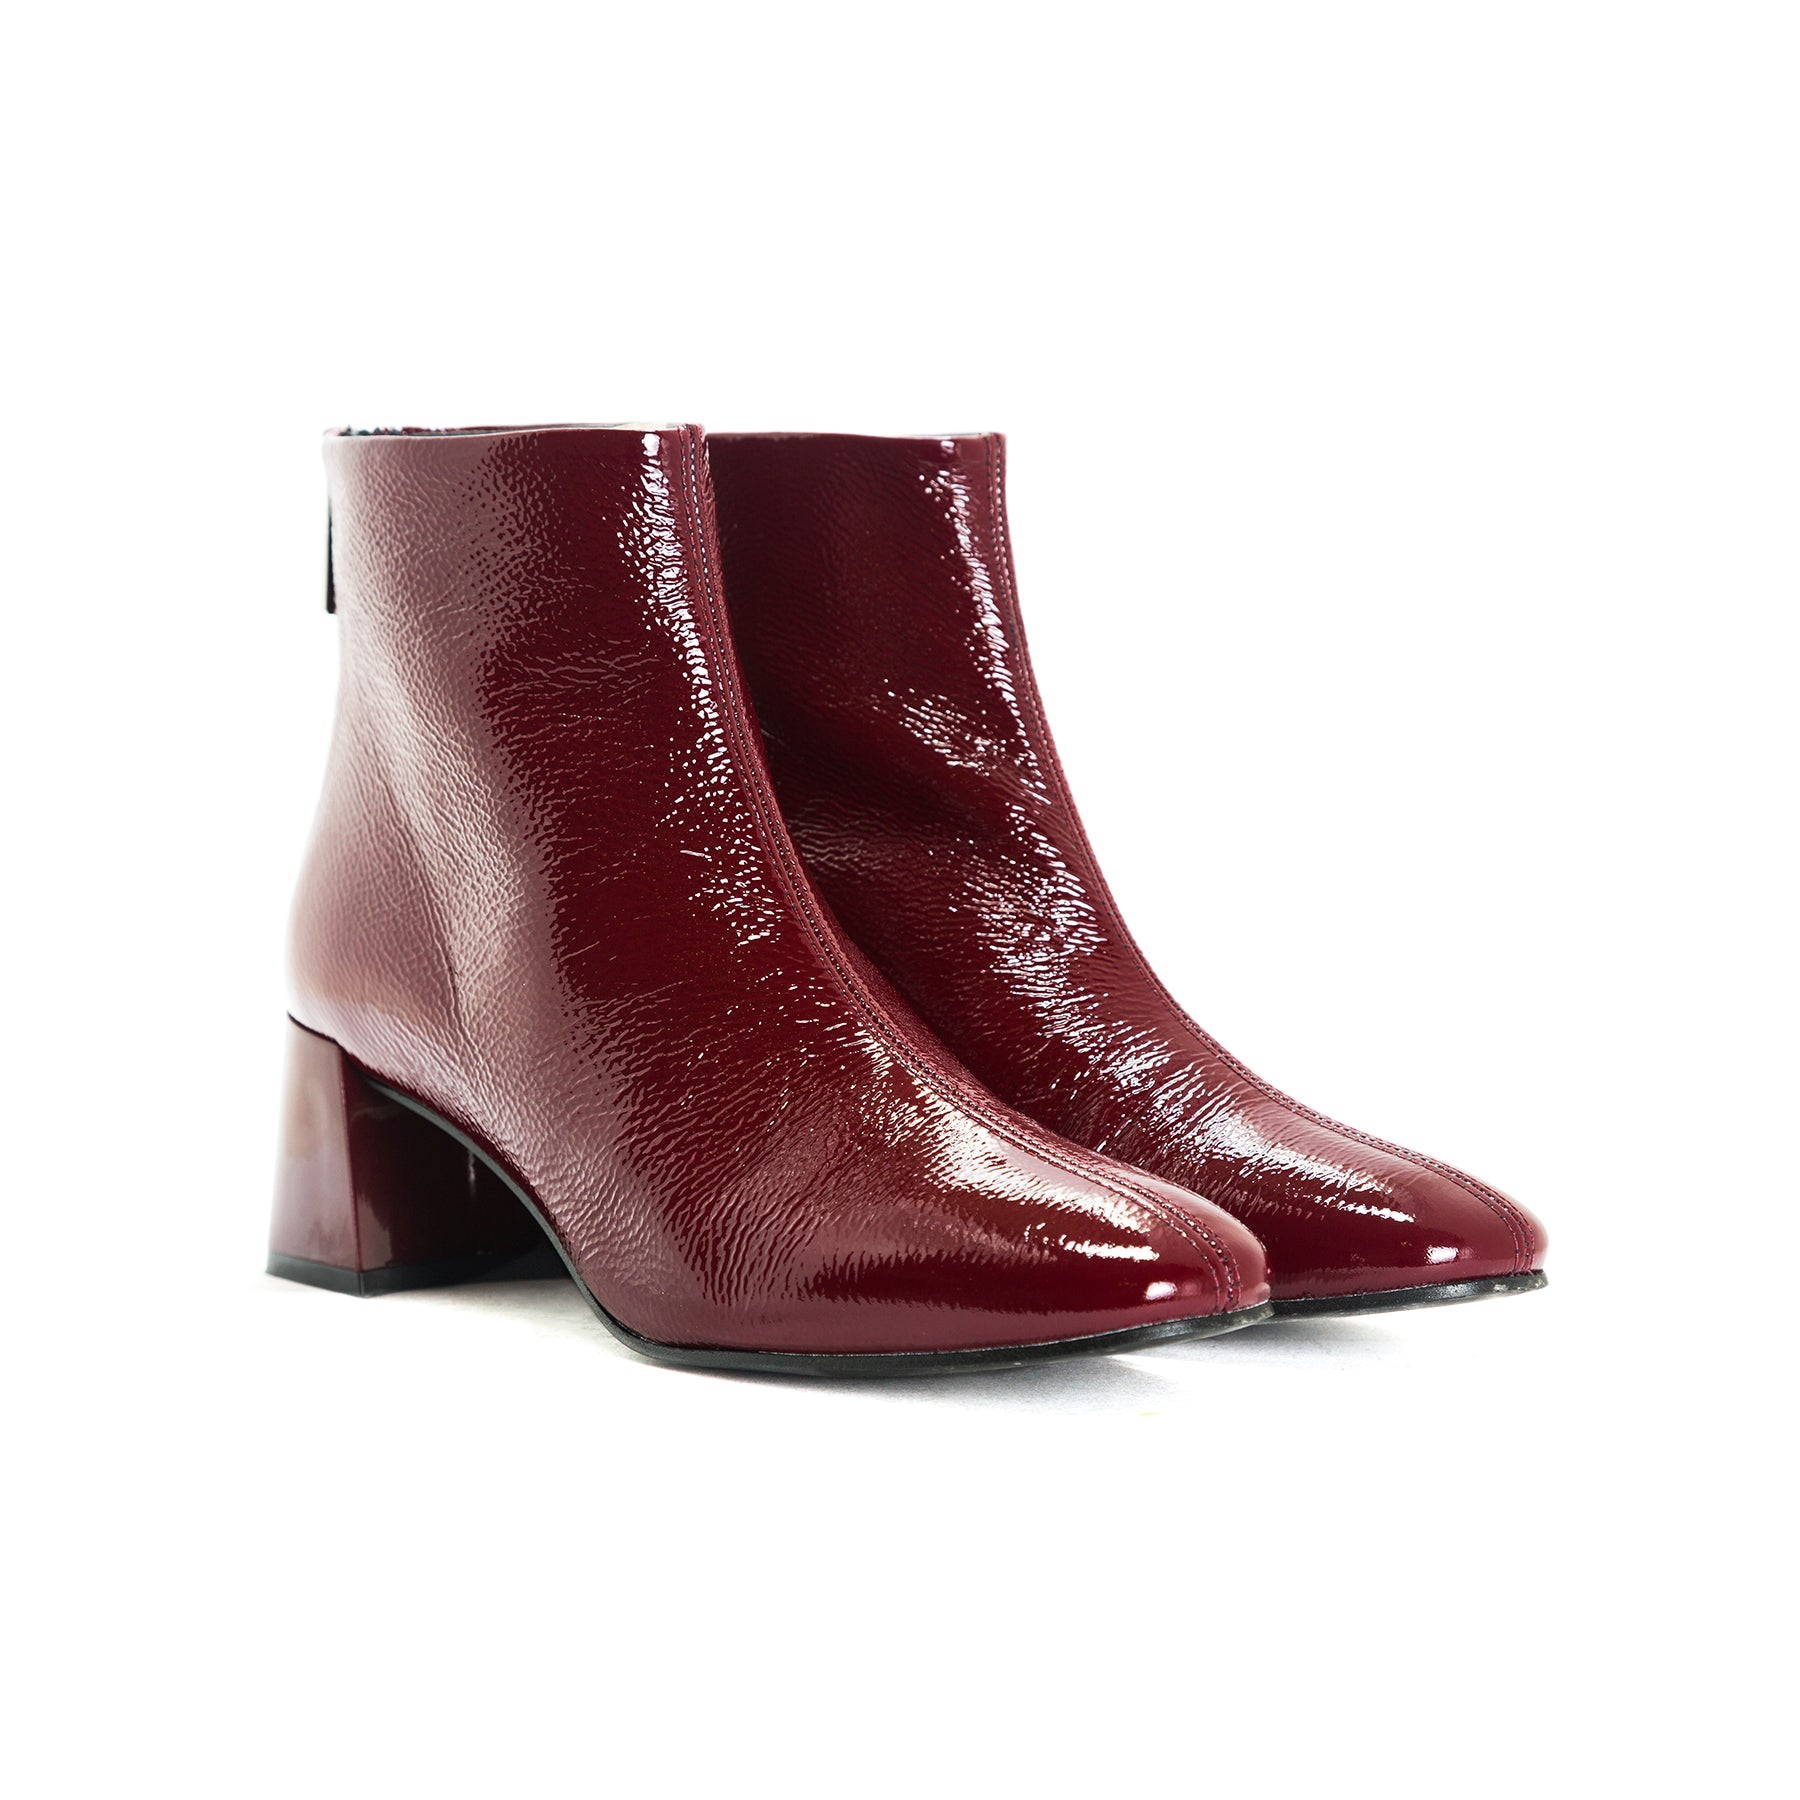 Zagreb Bordo Naplack Booties